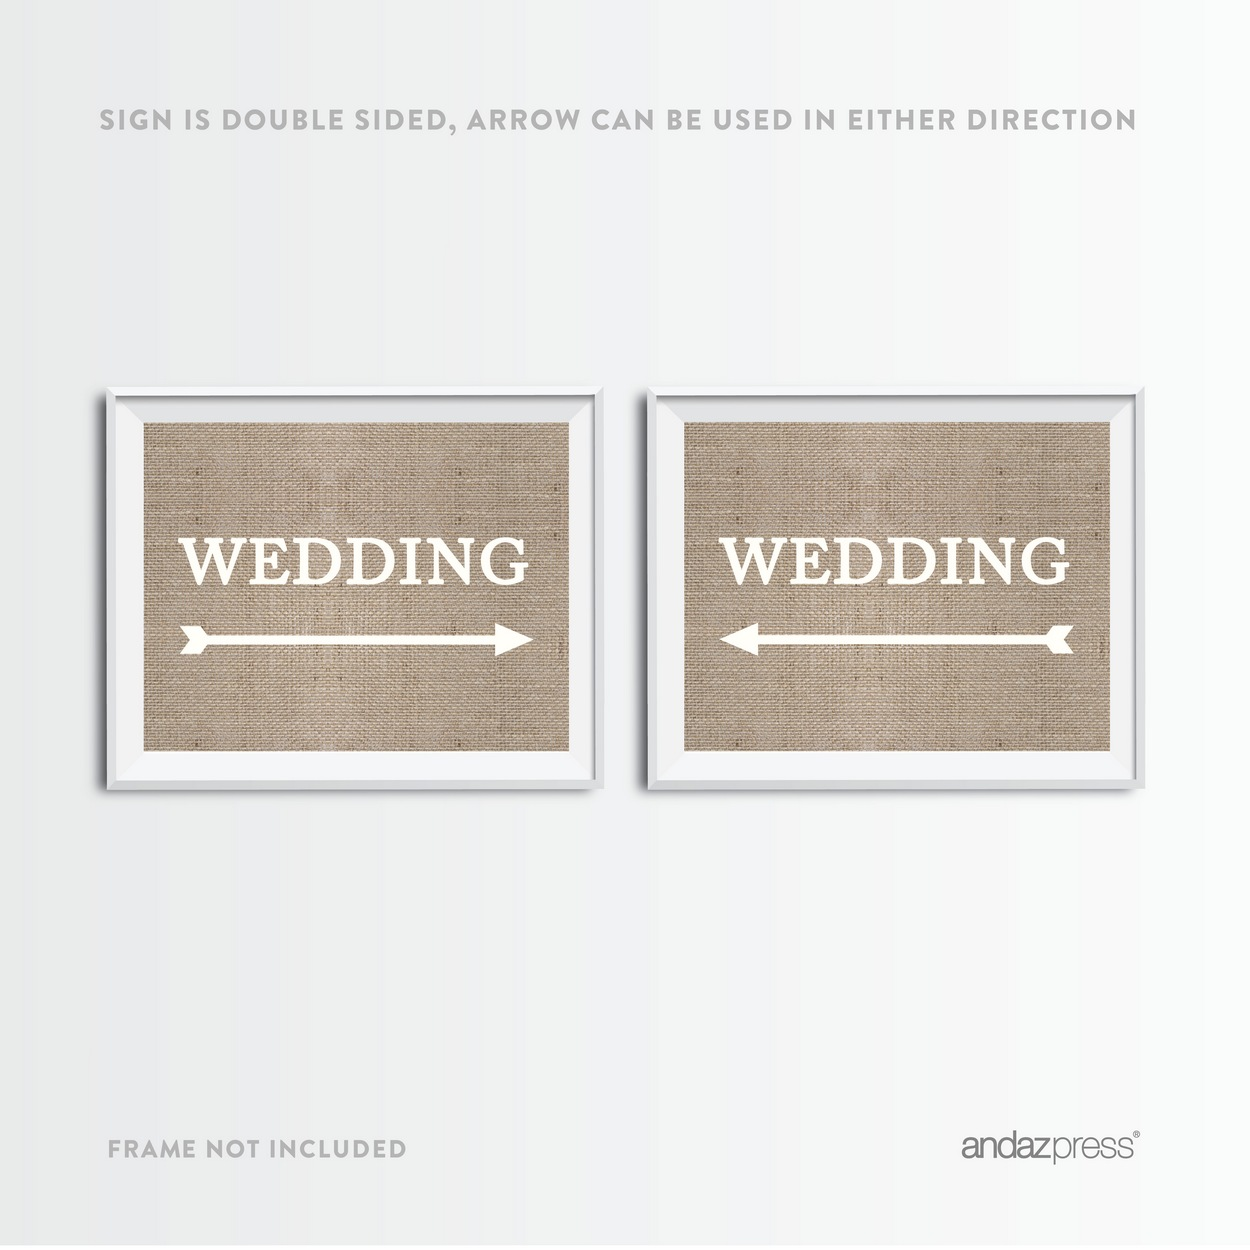 Wedding Burlap Wedding Party Directional Signs, Double-Sided Big Arrow